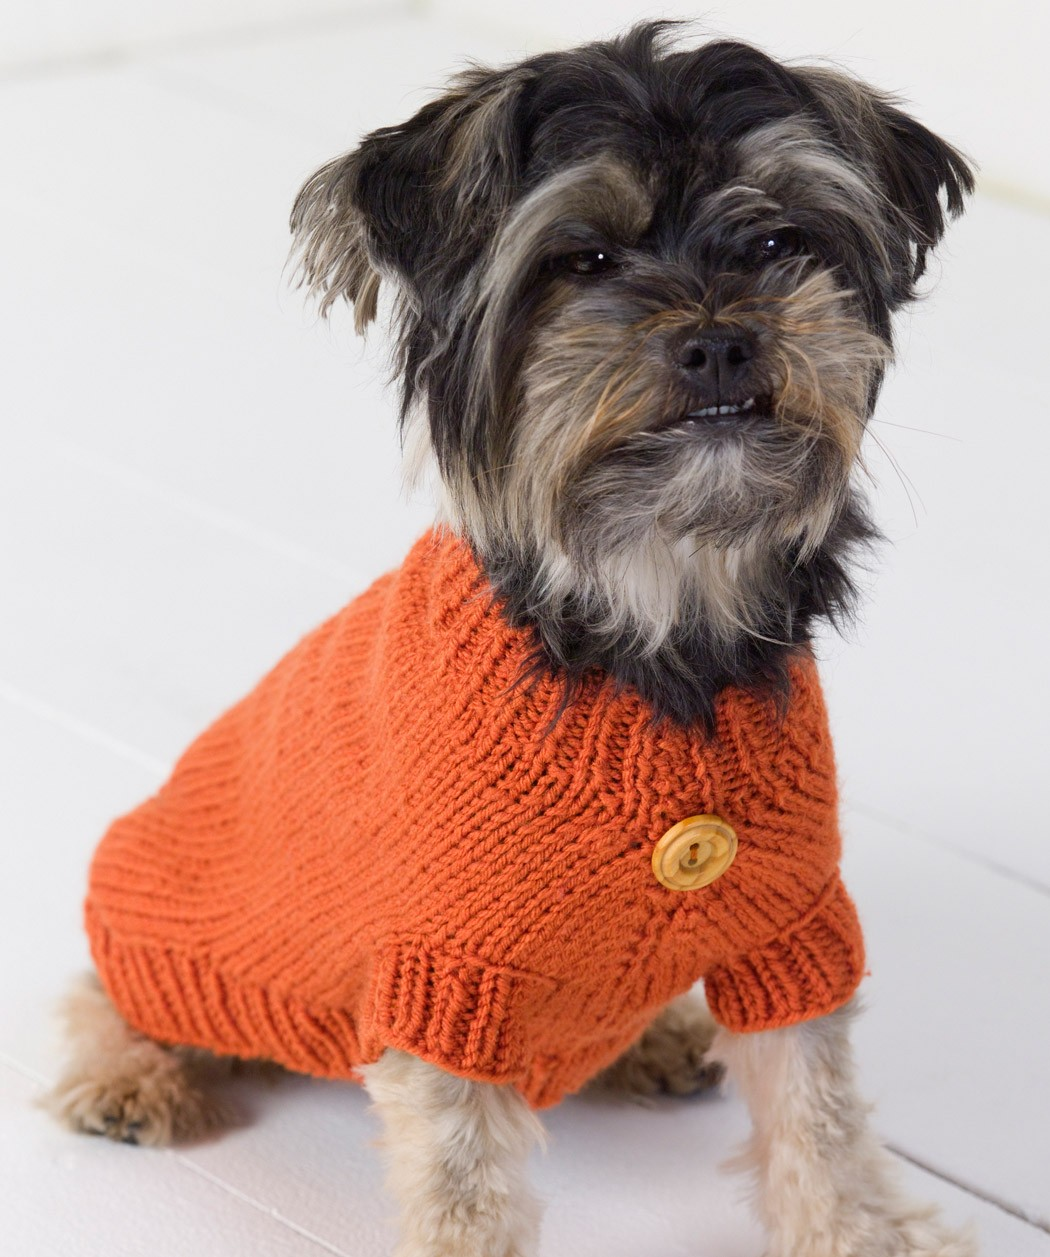 Knitting Pattern Large Dog Coat : Dog Sweater Knitting Pattern A Knitting Blog